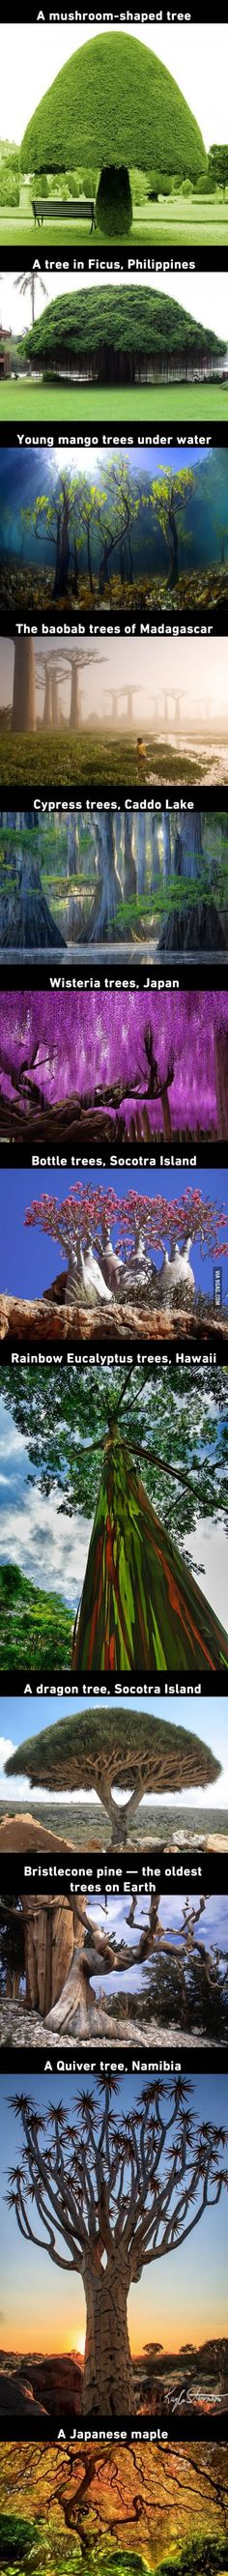 12 Beautiful Trees That You'd Thought They Grow On Pandora From Avatar